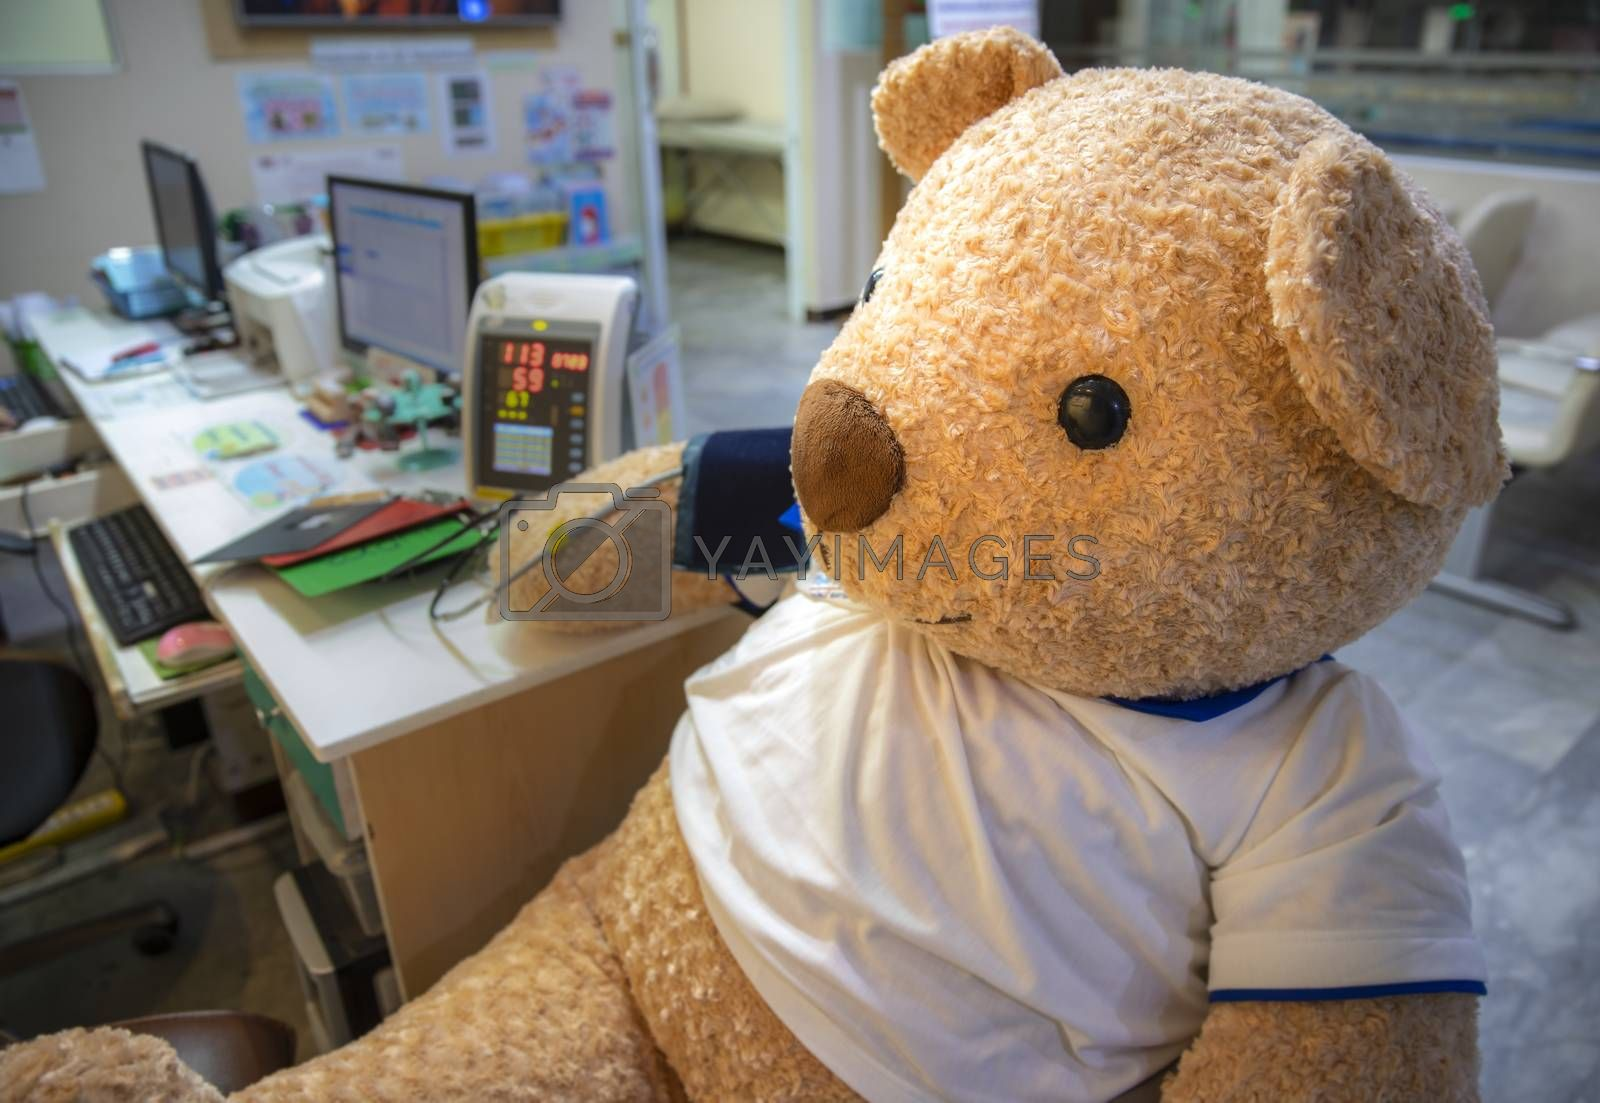 a stuffed toy bear in the clinic screening area by Nawoot